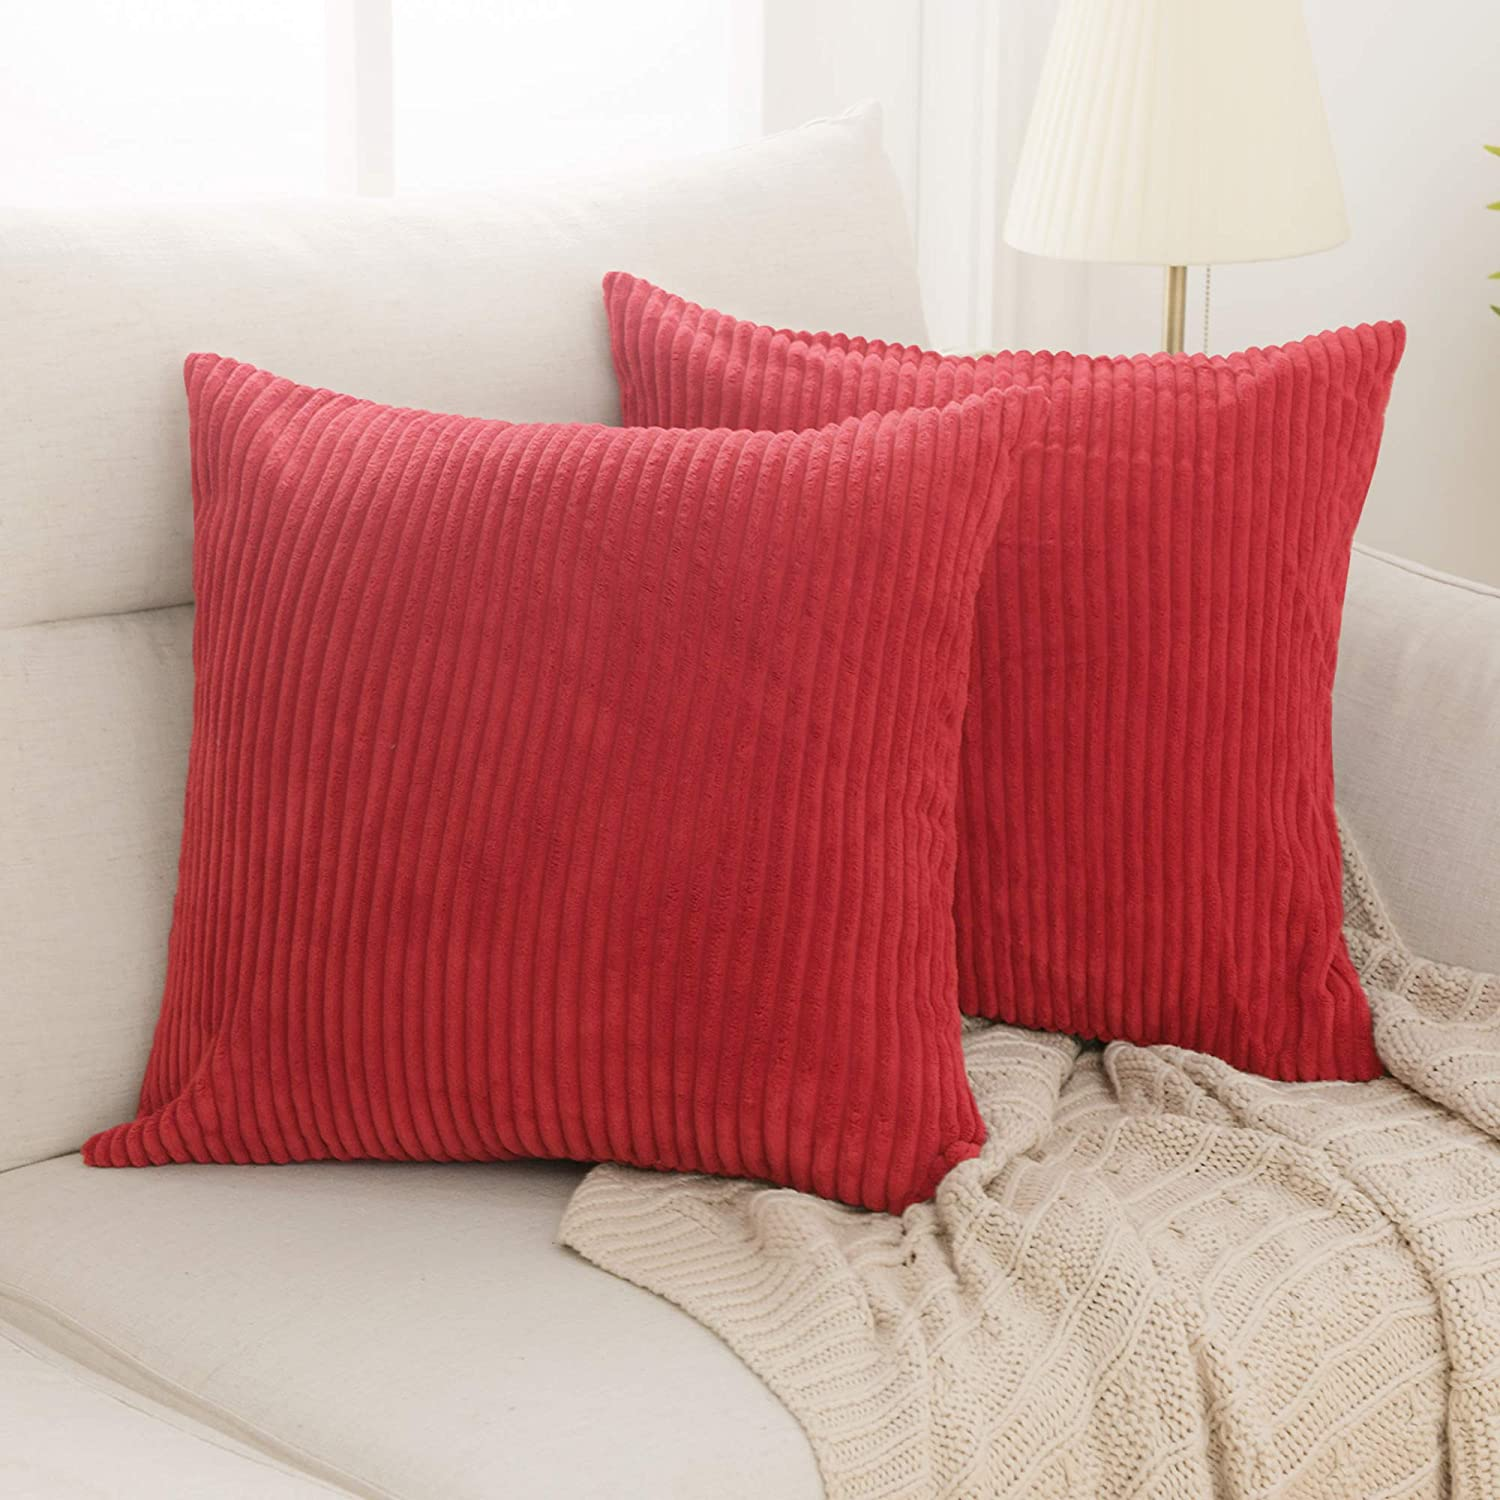 Deconovo Christmas Decorations Pack of 2 Cushion Covers for Bedroom Soft Corduroy Throw Pillow Cover with Stripes Machine Washable Pillowcase for Bedroom 20x20 in True Red